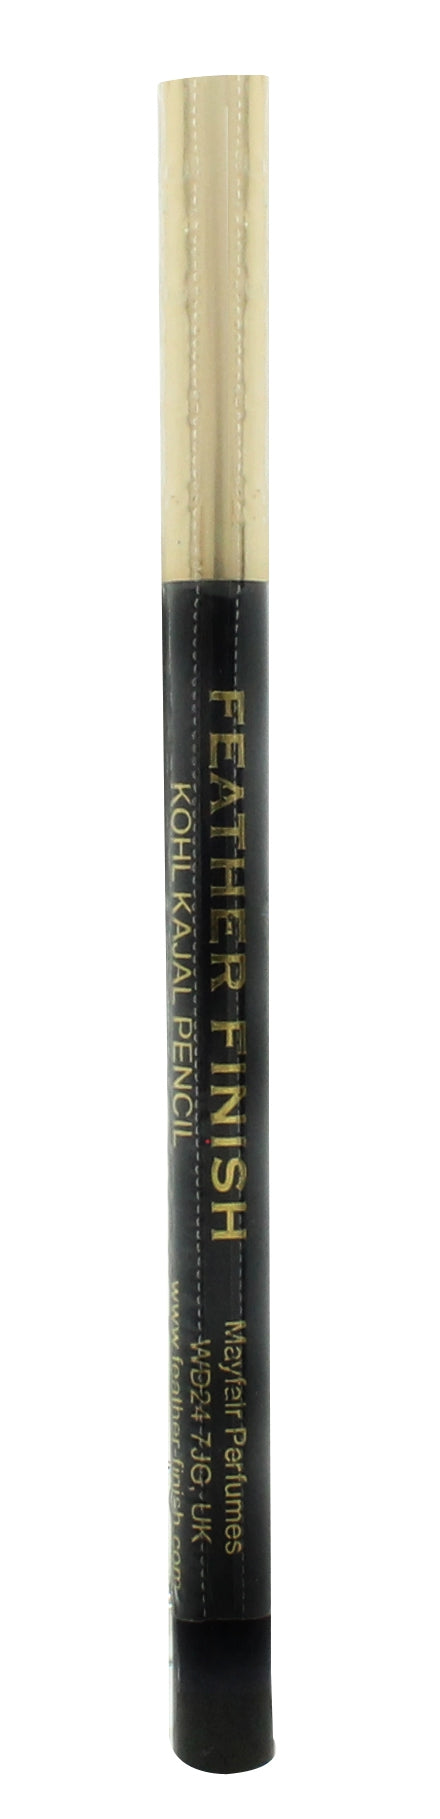 Mayfair Feather Finish Kohl Pencil - Black